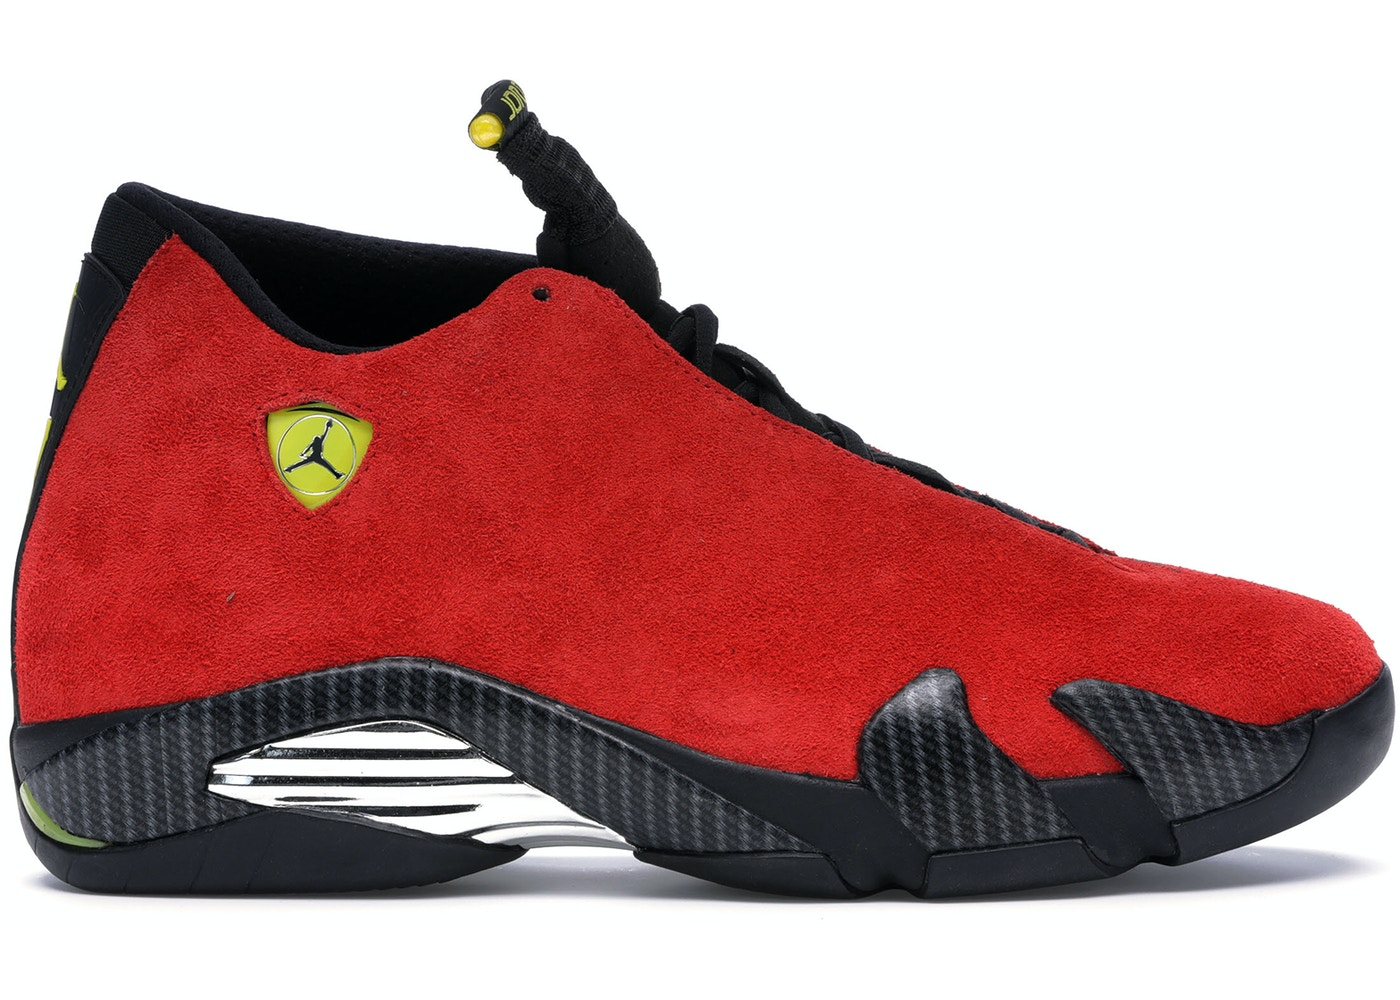 wholesale dealer 01f12 b8604 Jordan 14 Retro Ferrari - 654459-670